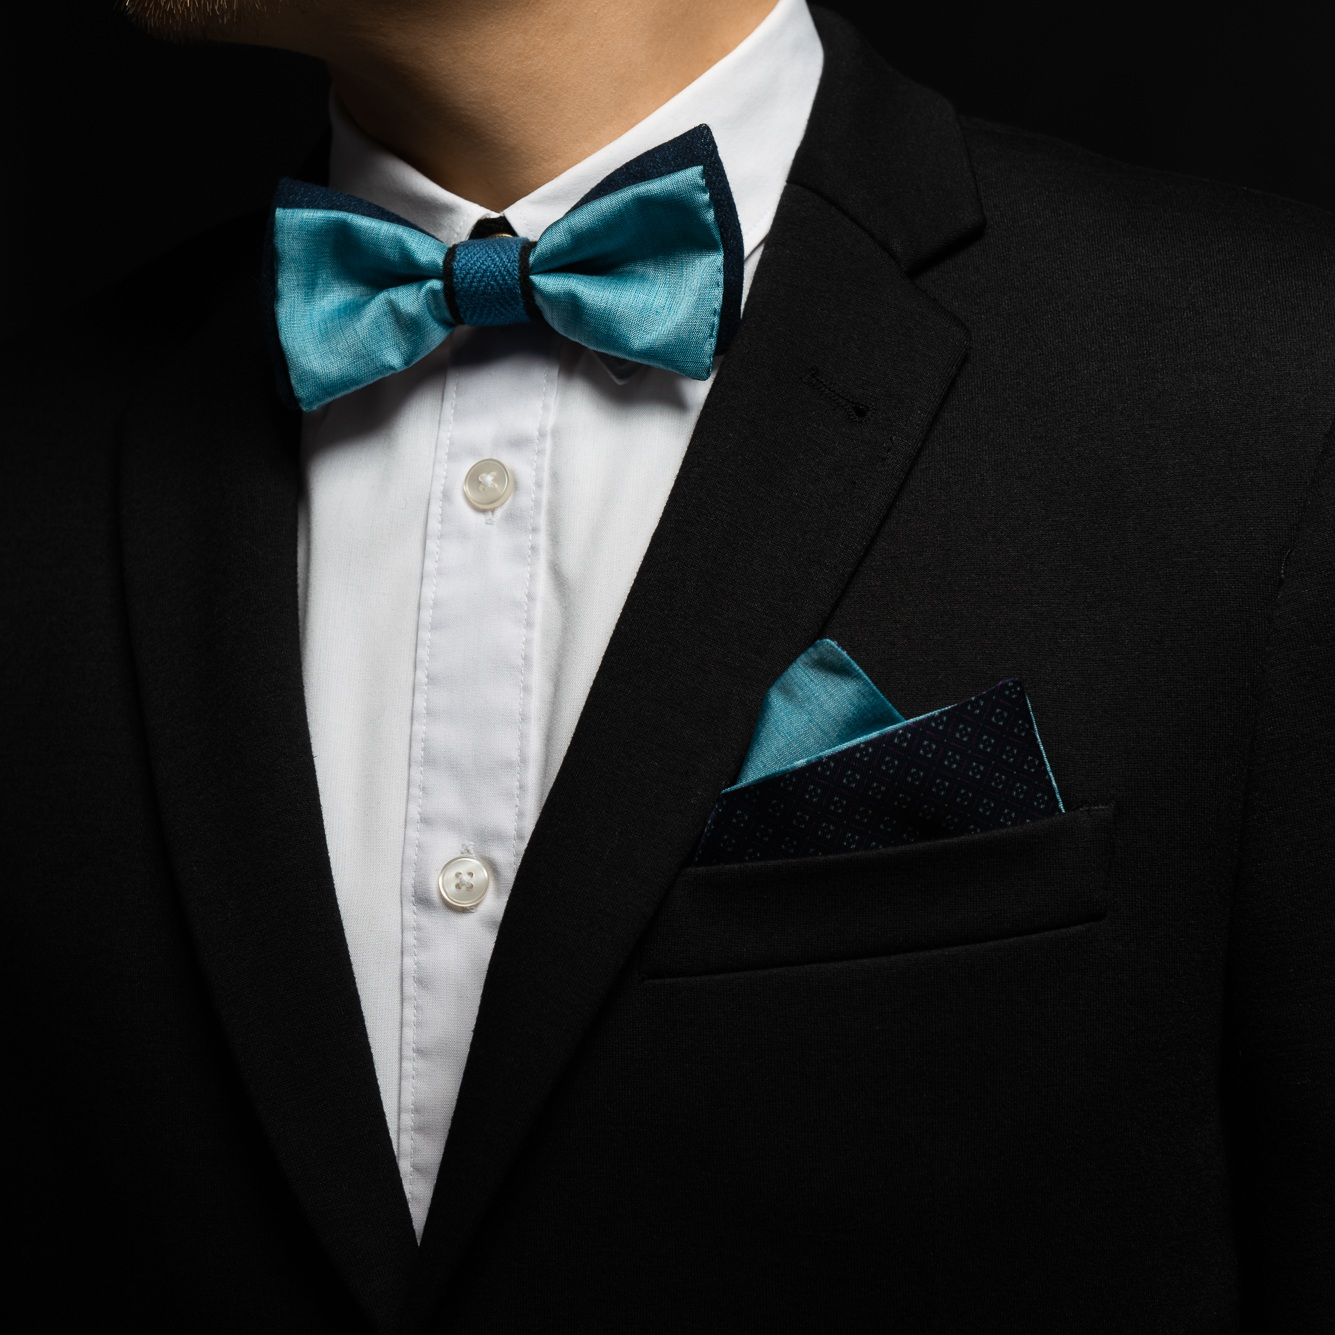 Accessorize it - with pocket square!